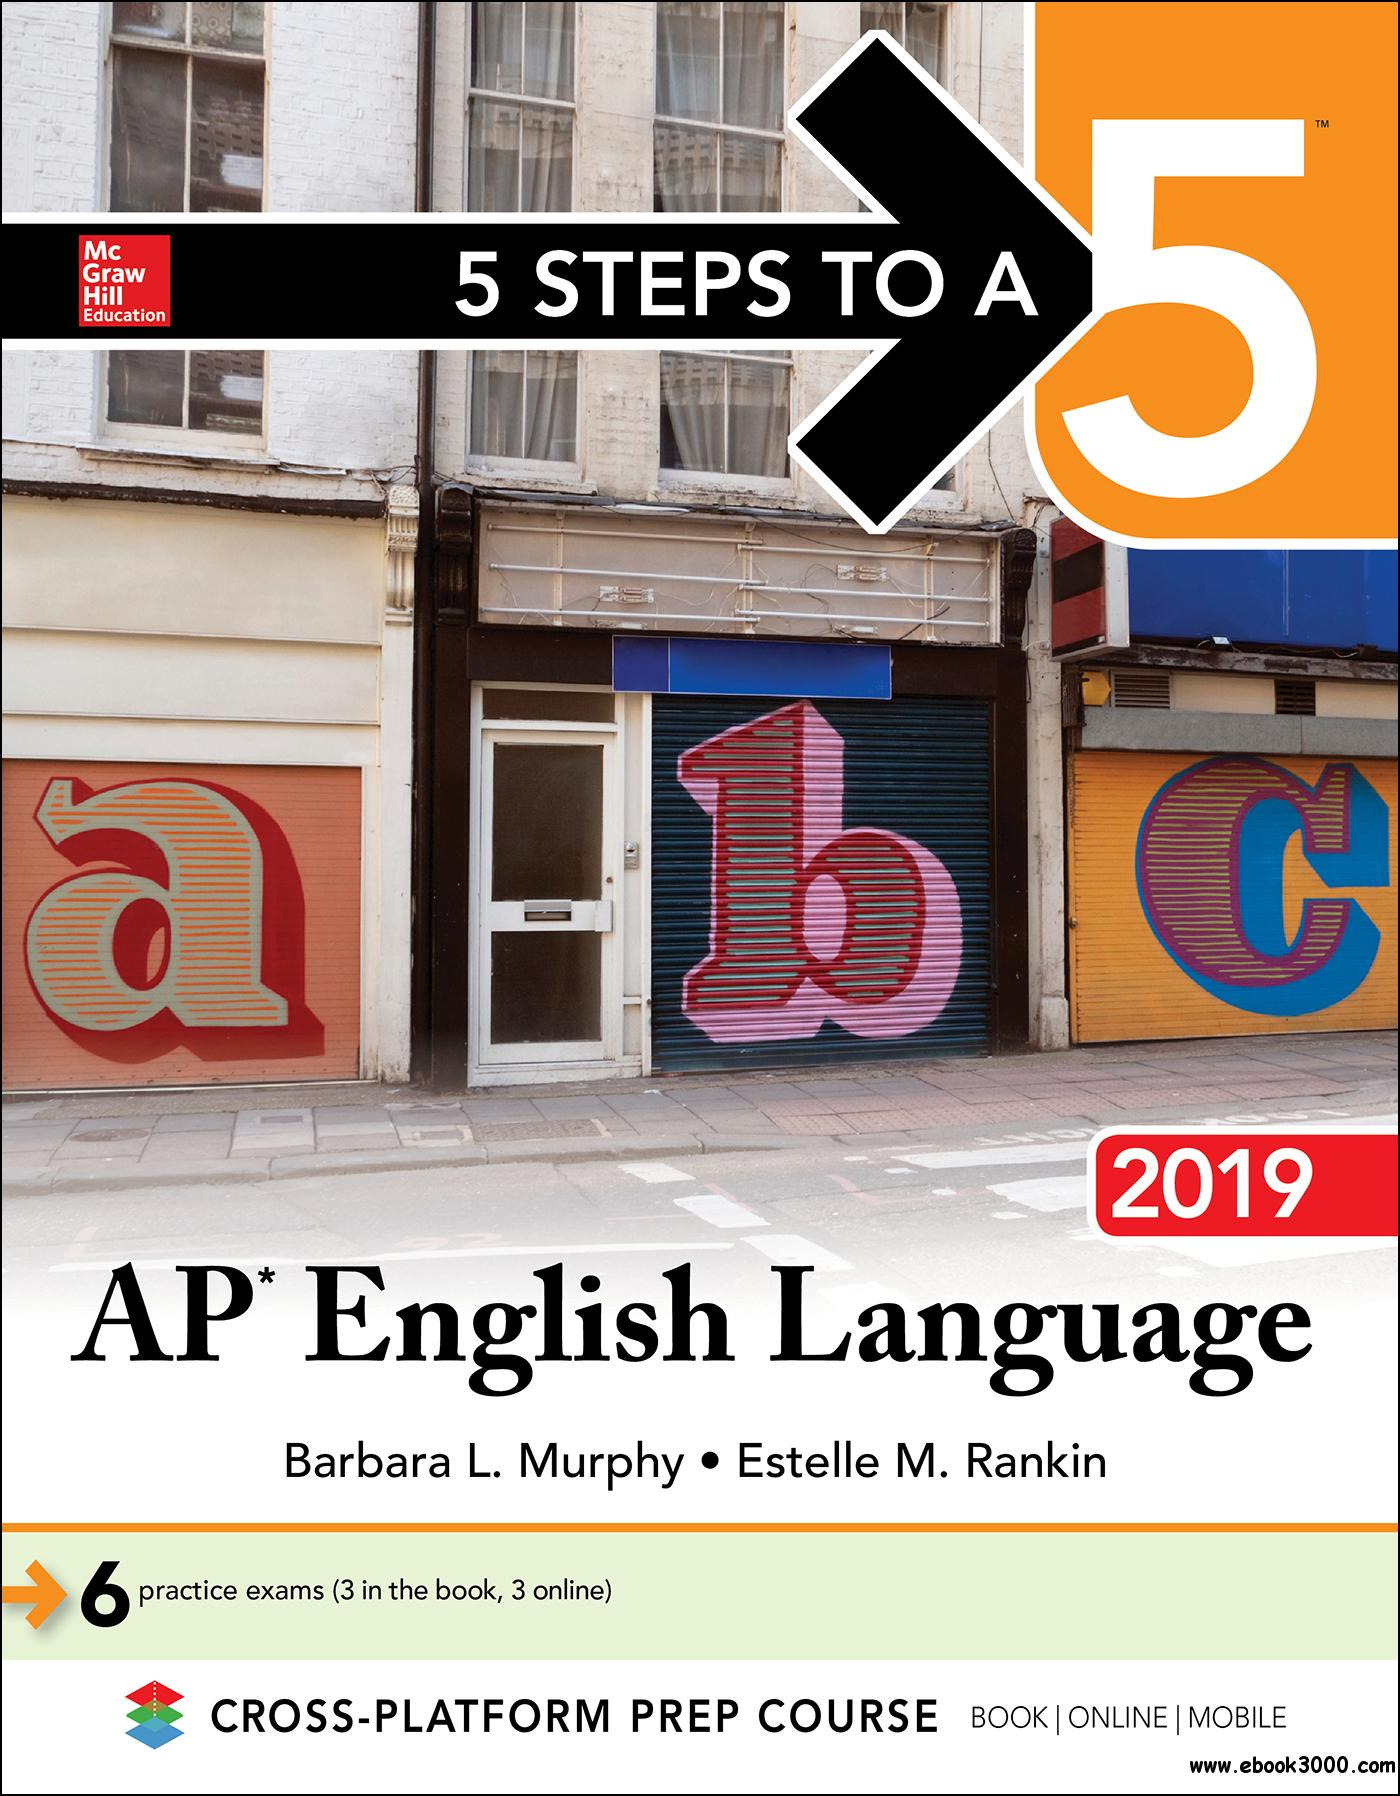 5 Steps to a 5: AP English Language 2019